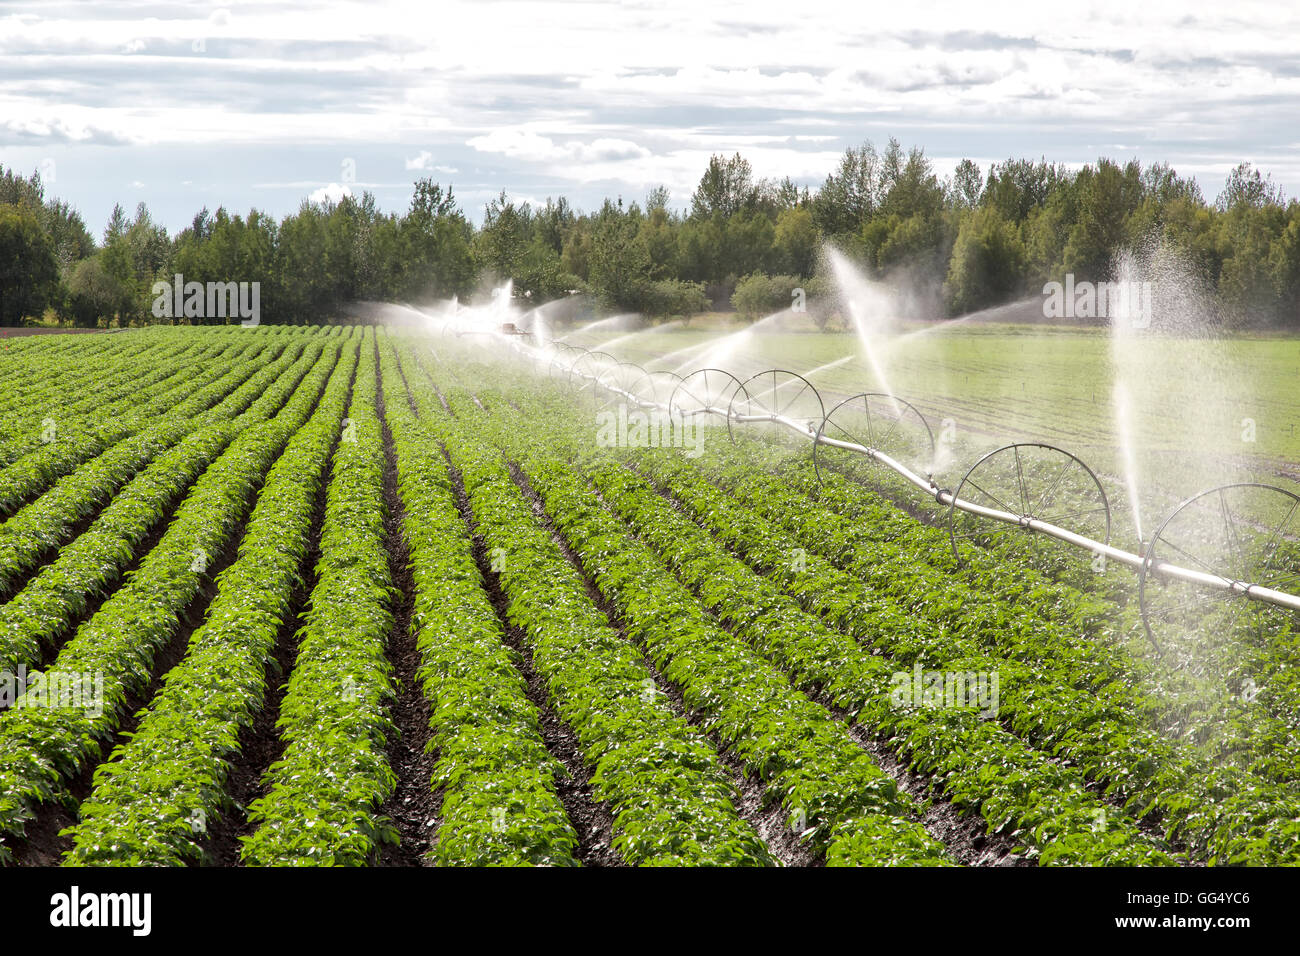 Wheel Line irrigation system operating in potato field. - Stock Image